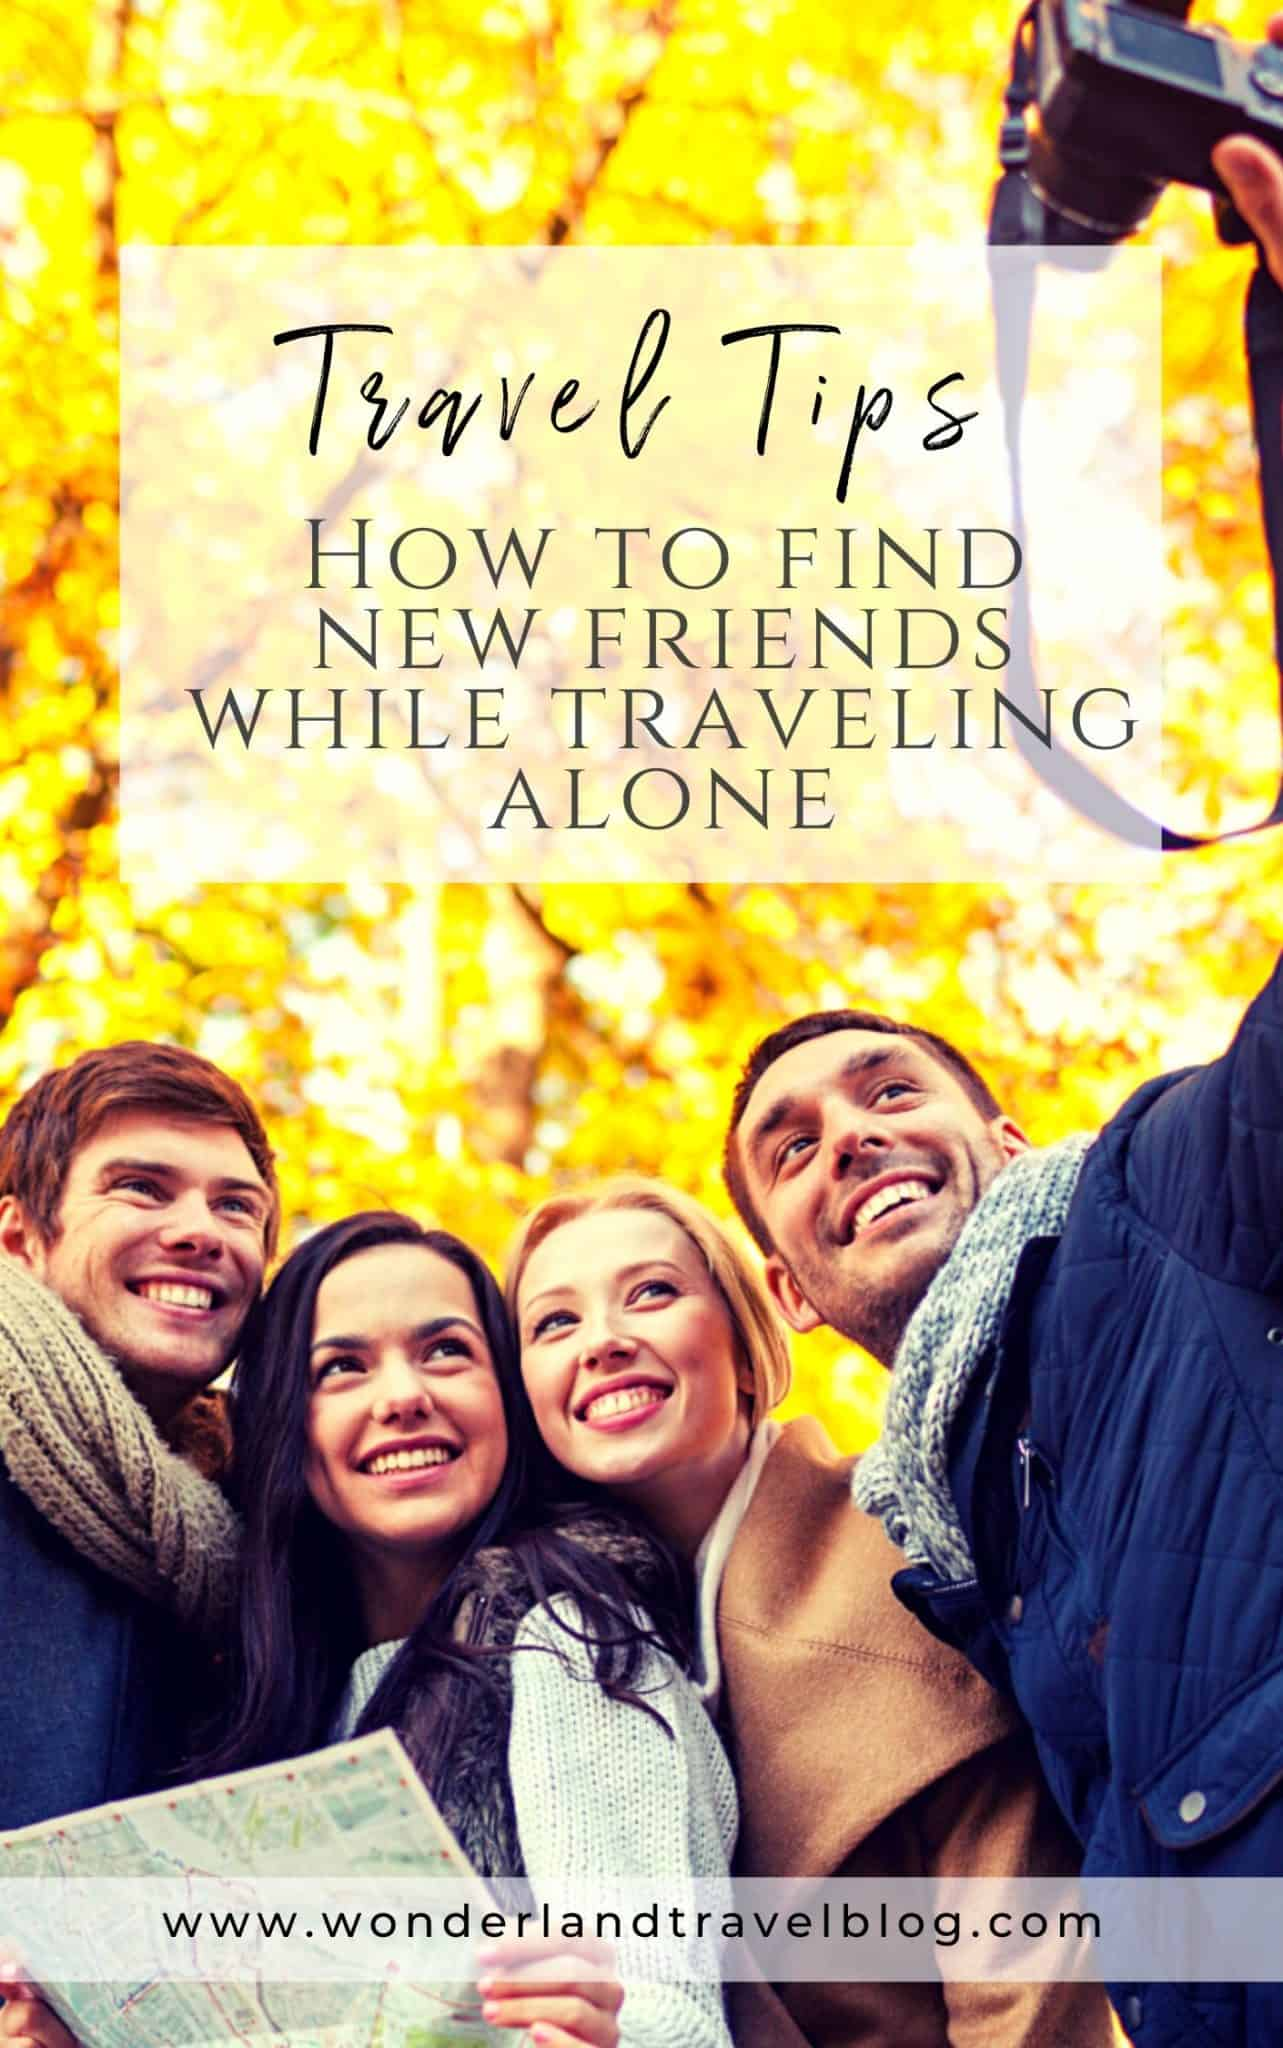 How to find new friends while traveling alone